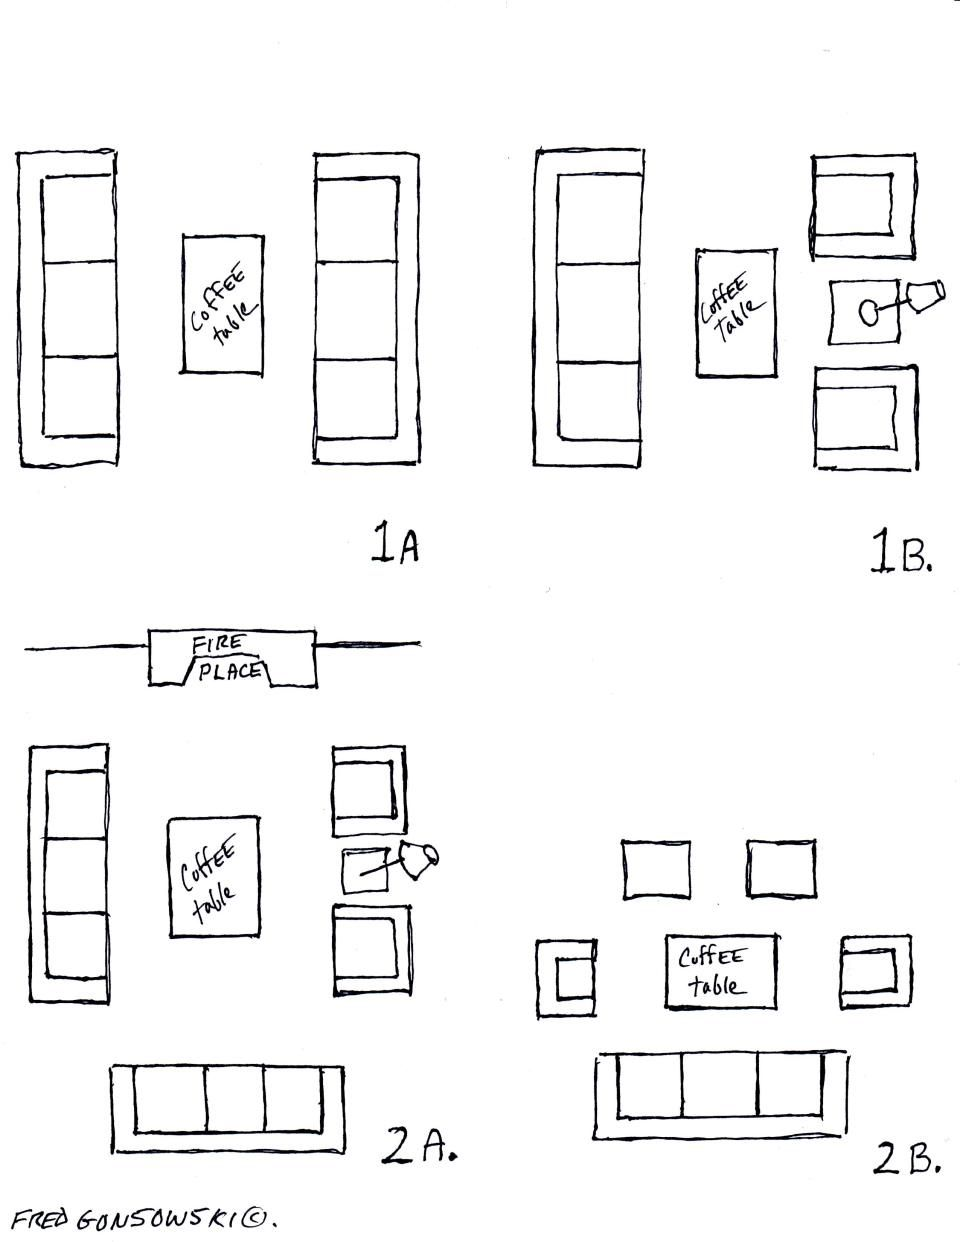 Different ways to arrange furniture in the same room | Awkward room ...